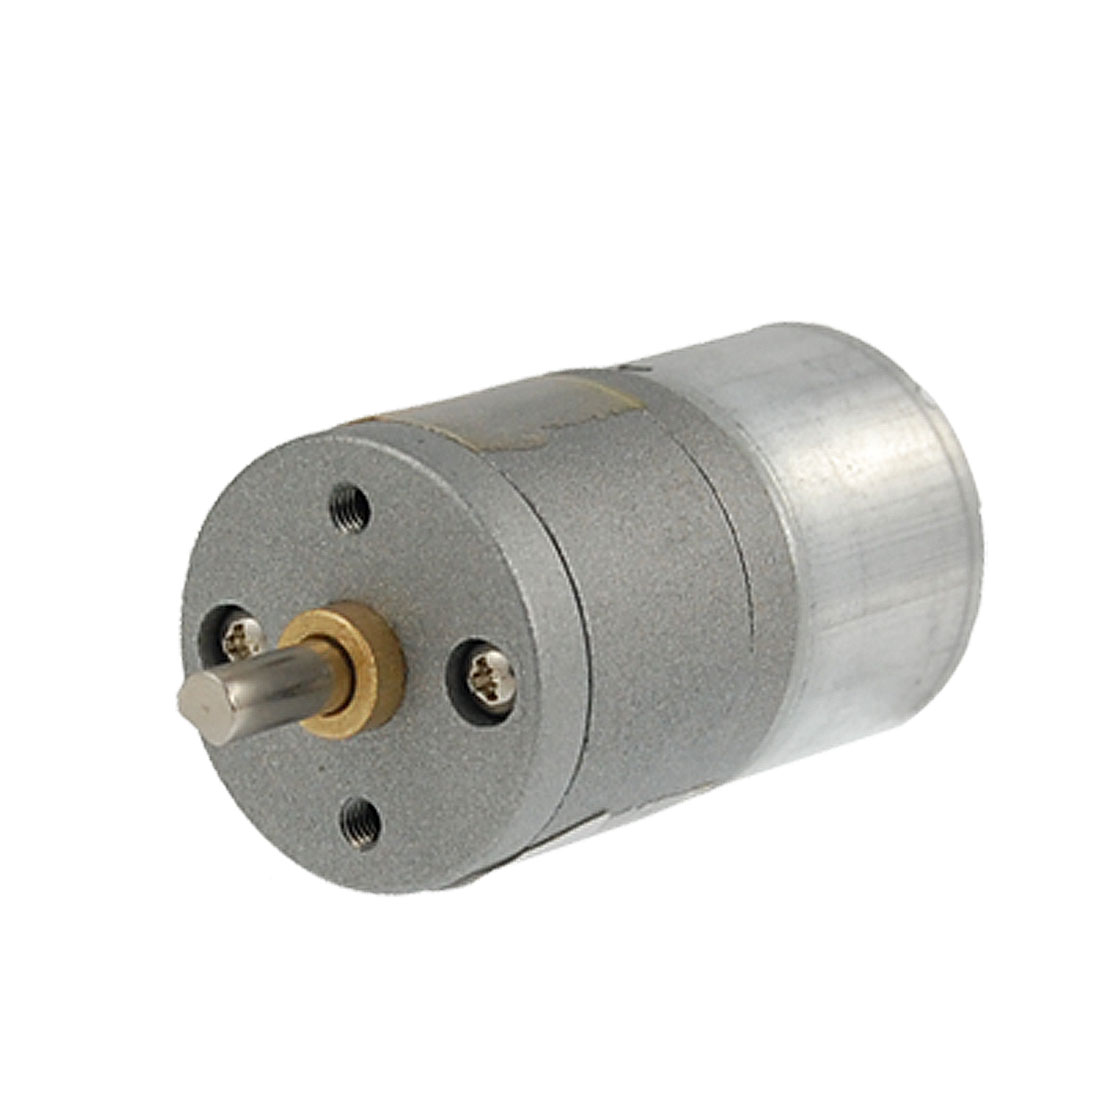 60RPM DC 6V 0.09A DC Electric Speed Reduce Geared Motor